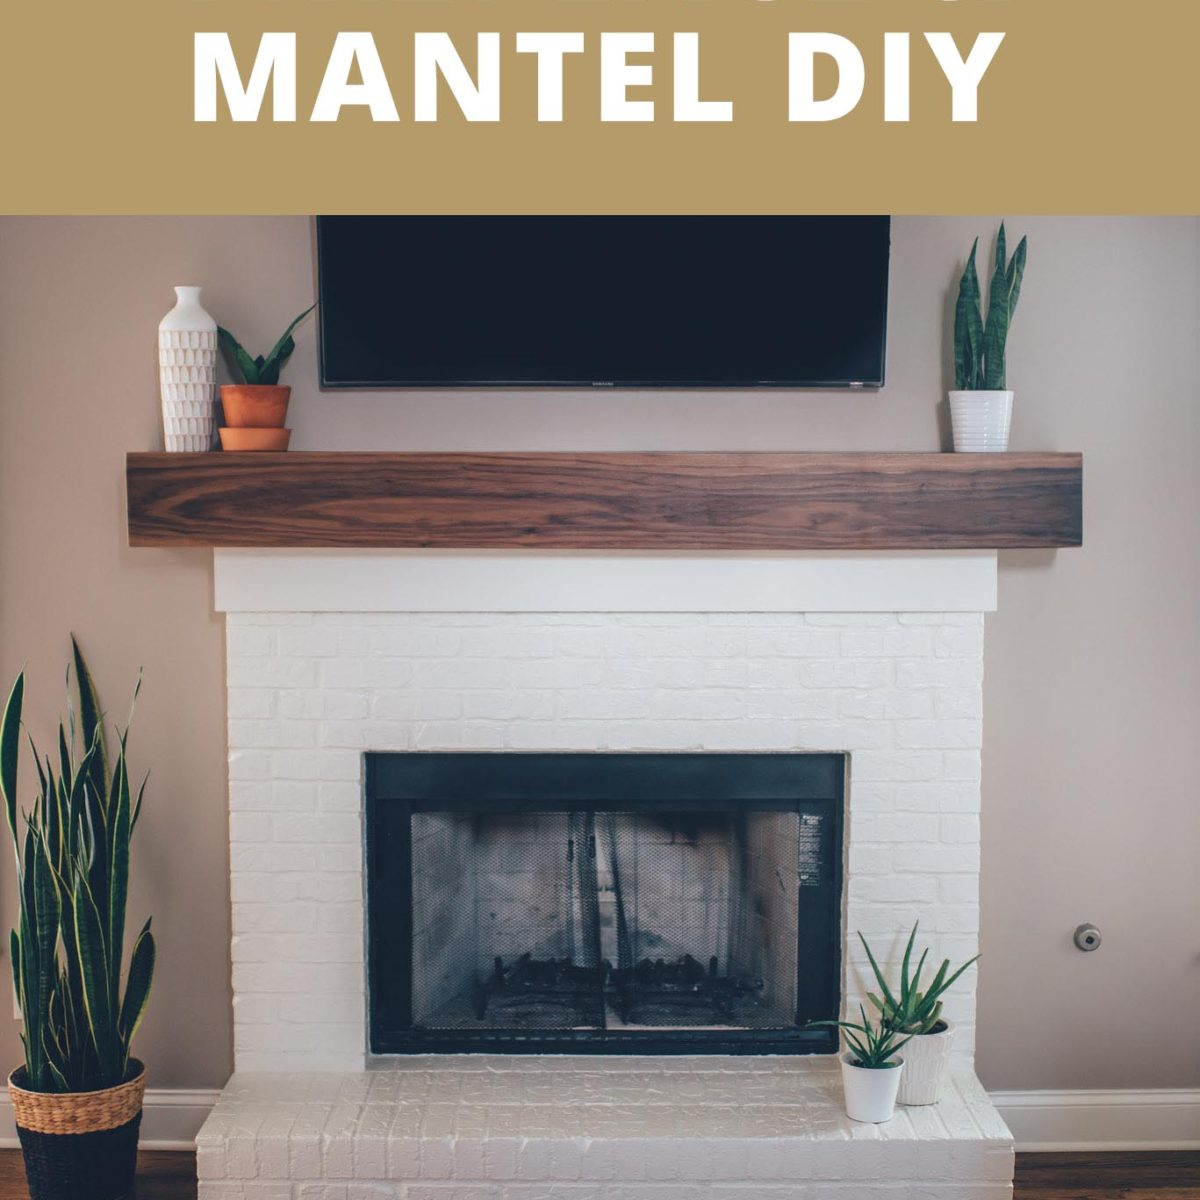 Mantel Kits For Brick Fireplace Modern White Brick Fireplace And Walnut Mantel Diy The